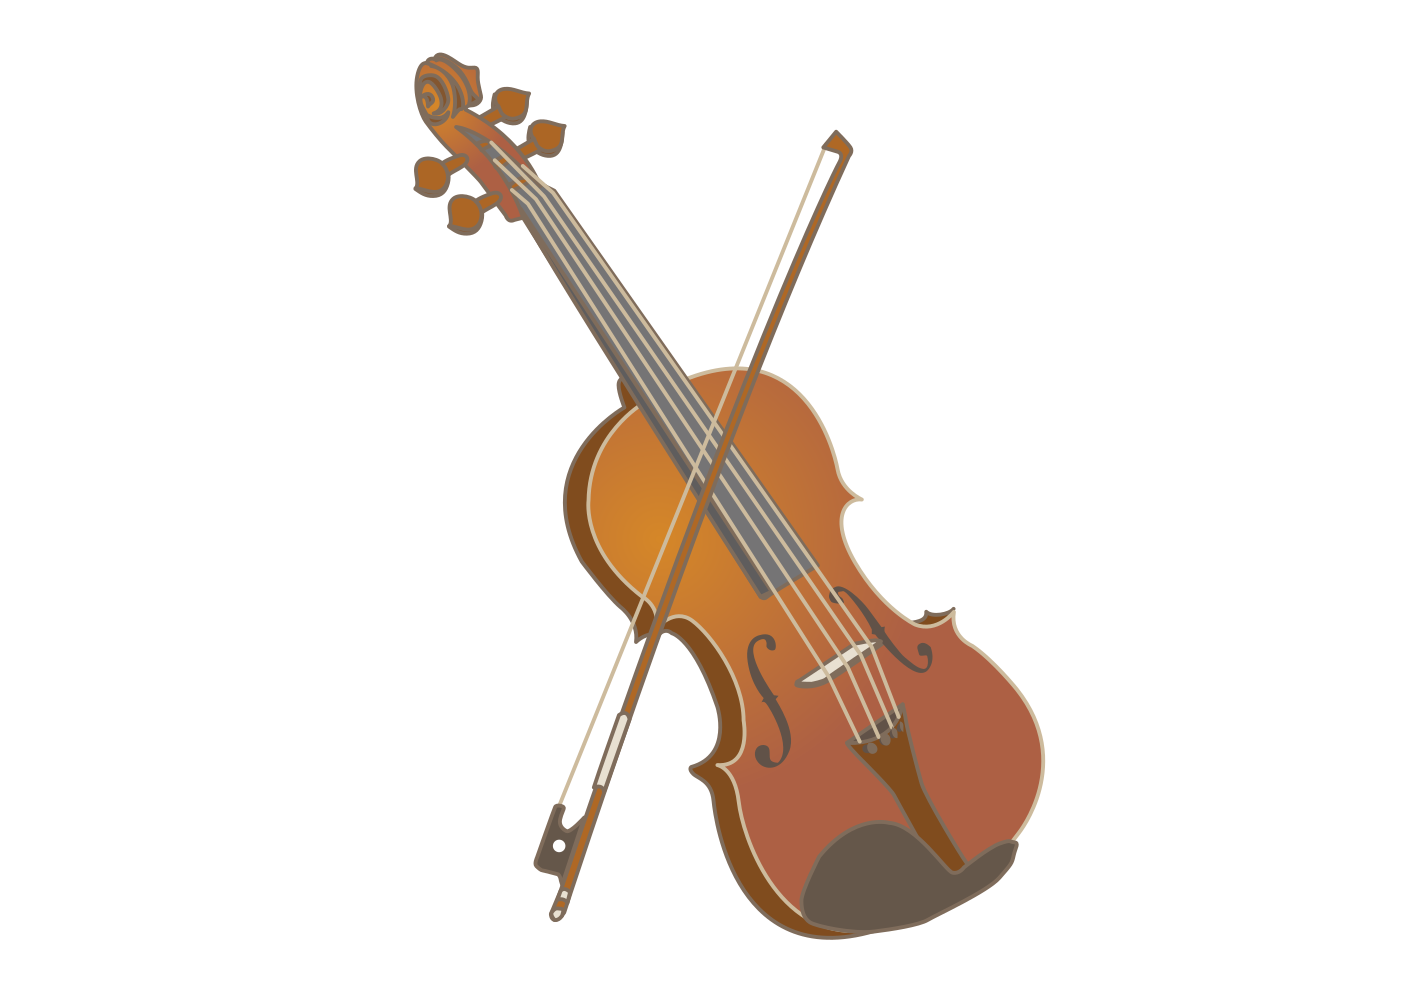 Onlinelabels clip art and. Guitar clipart violin banner library library